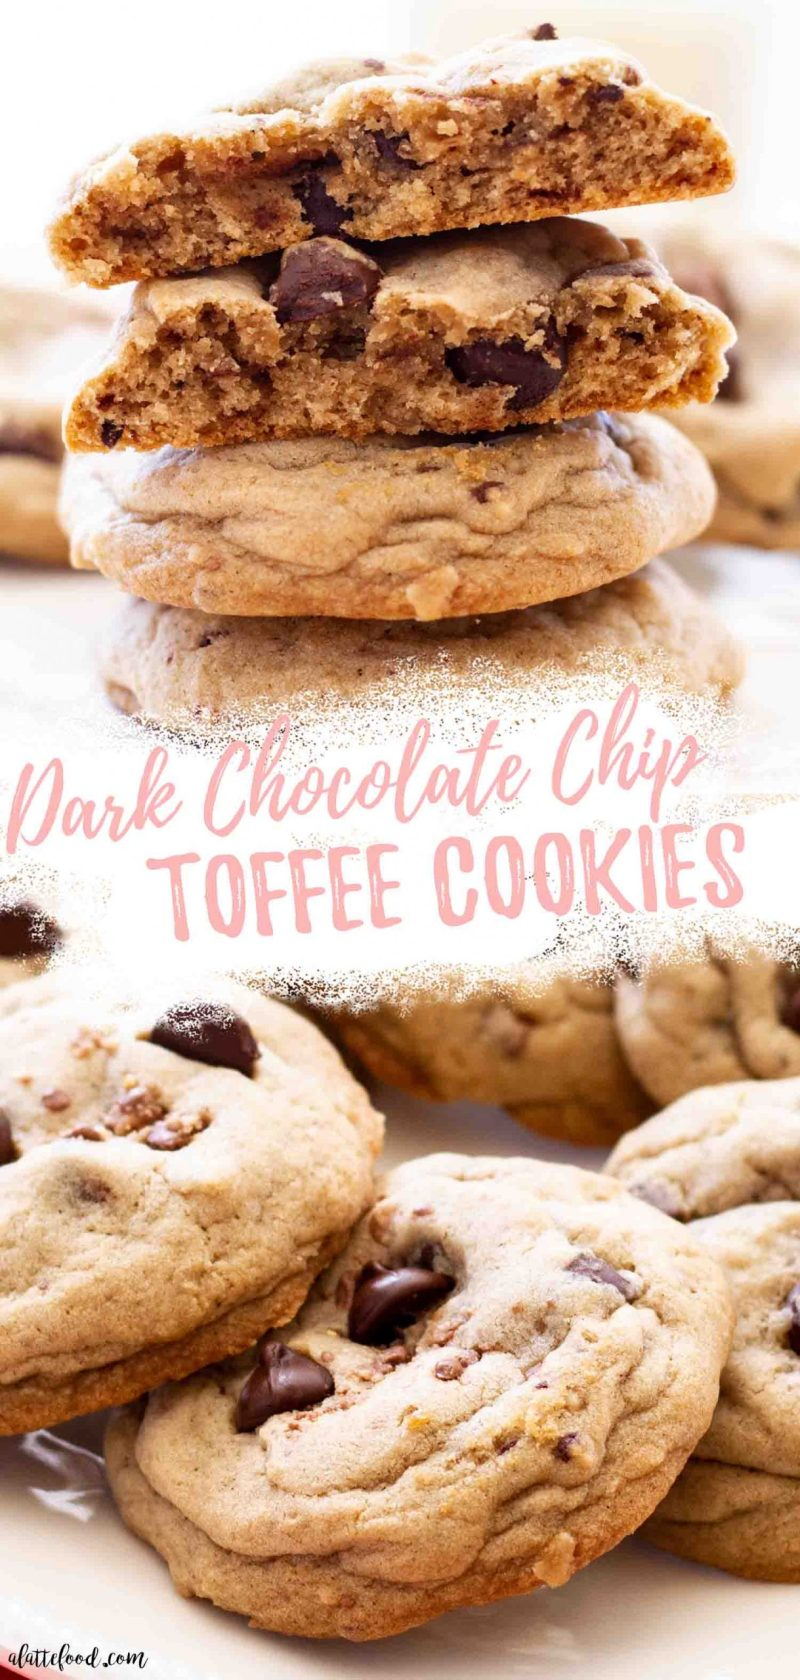 gooey dark chocolate chip toffee cookies on white plate collage with text